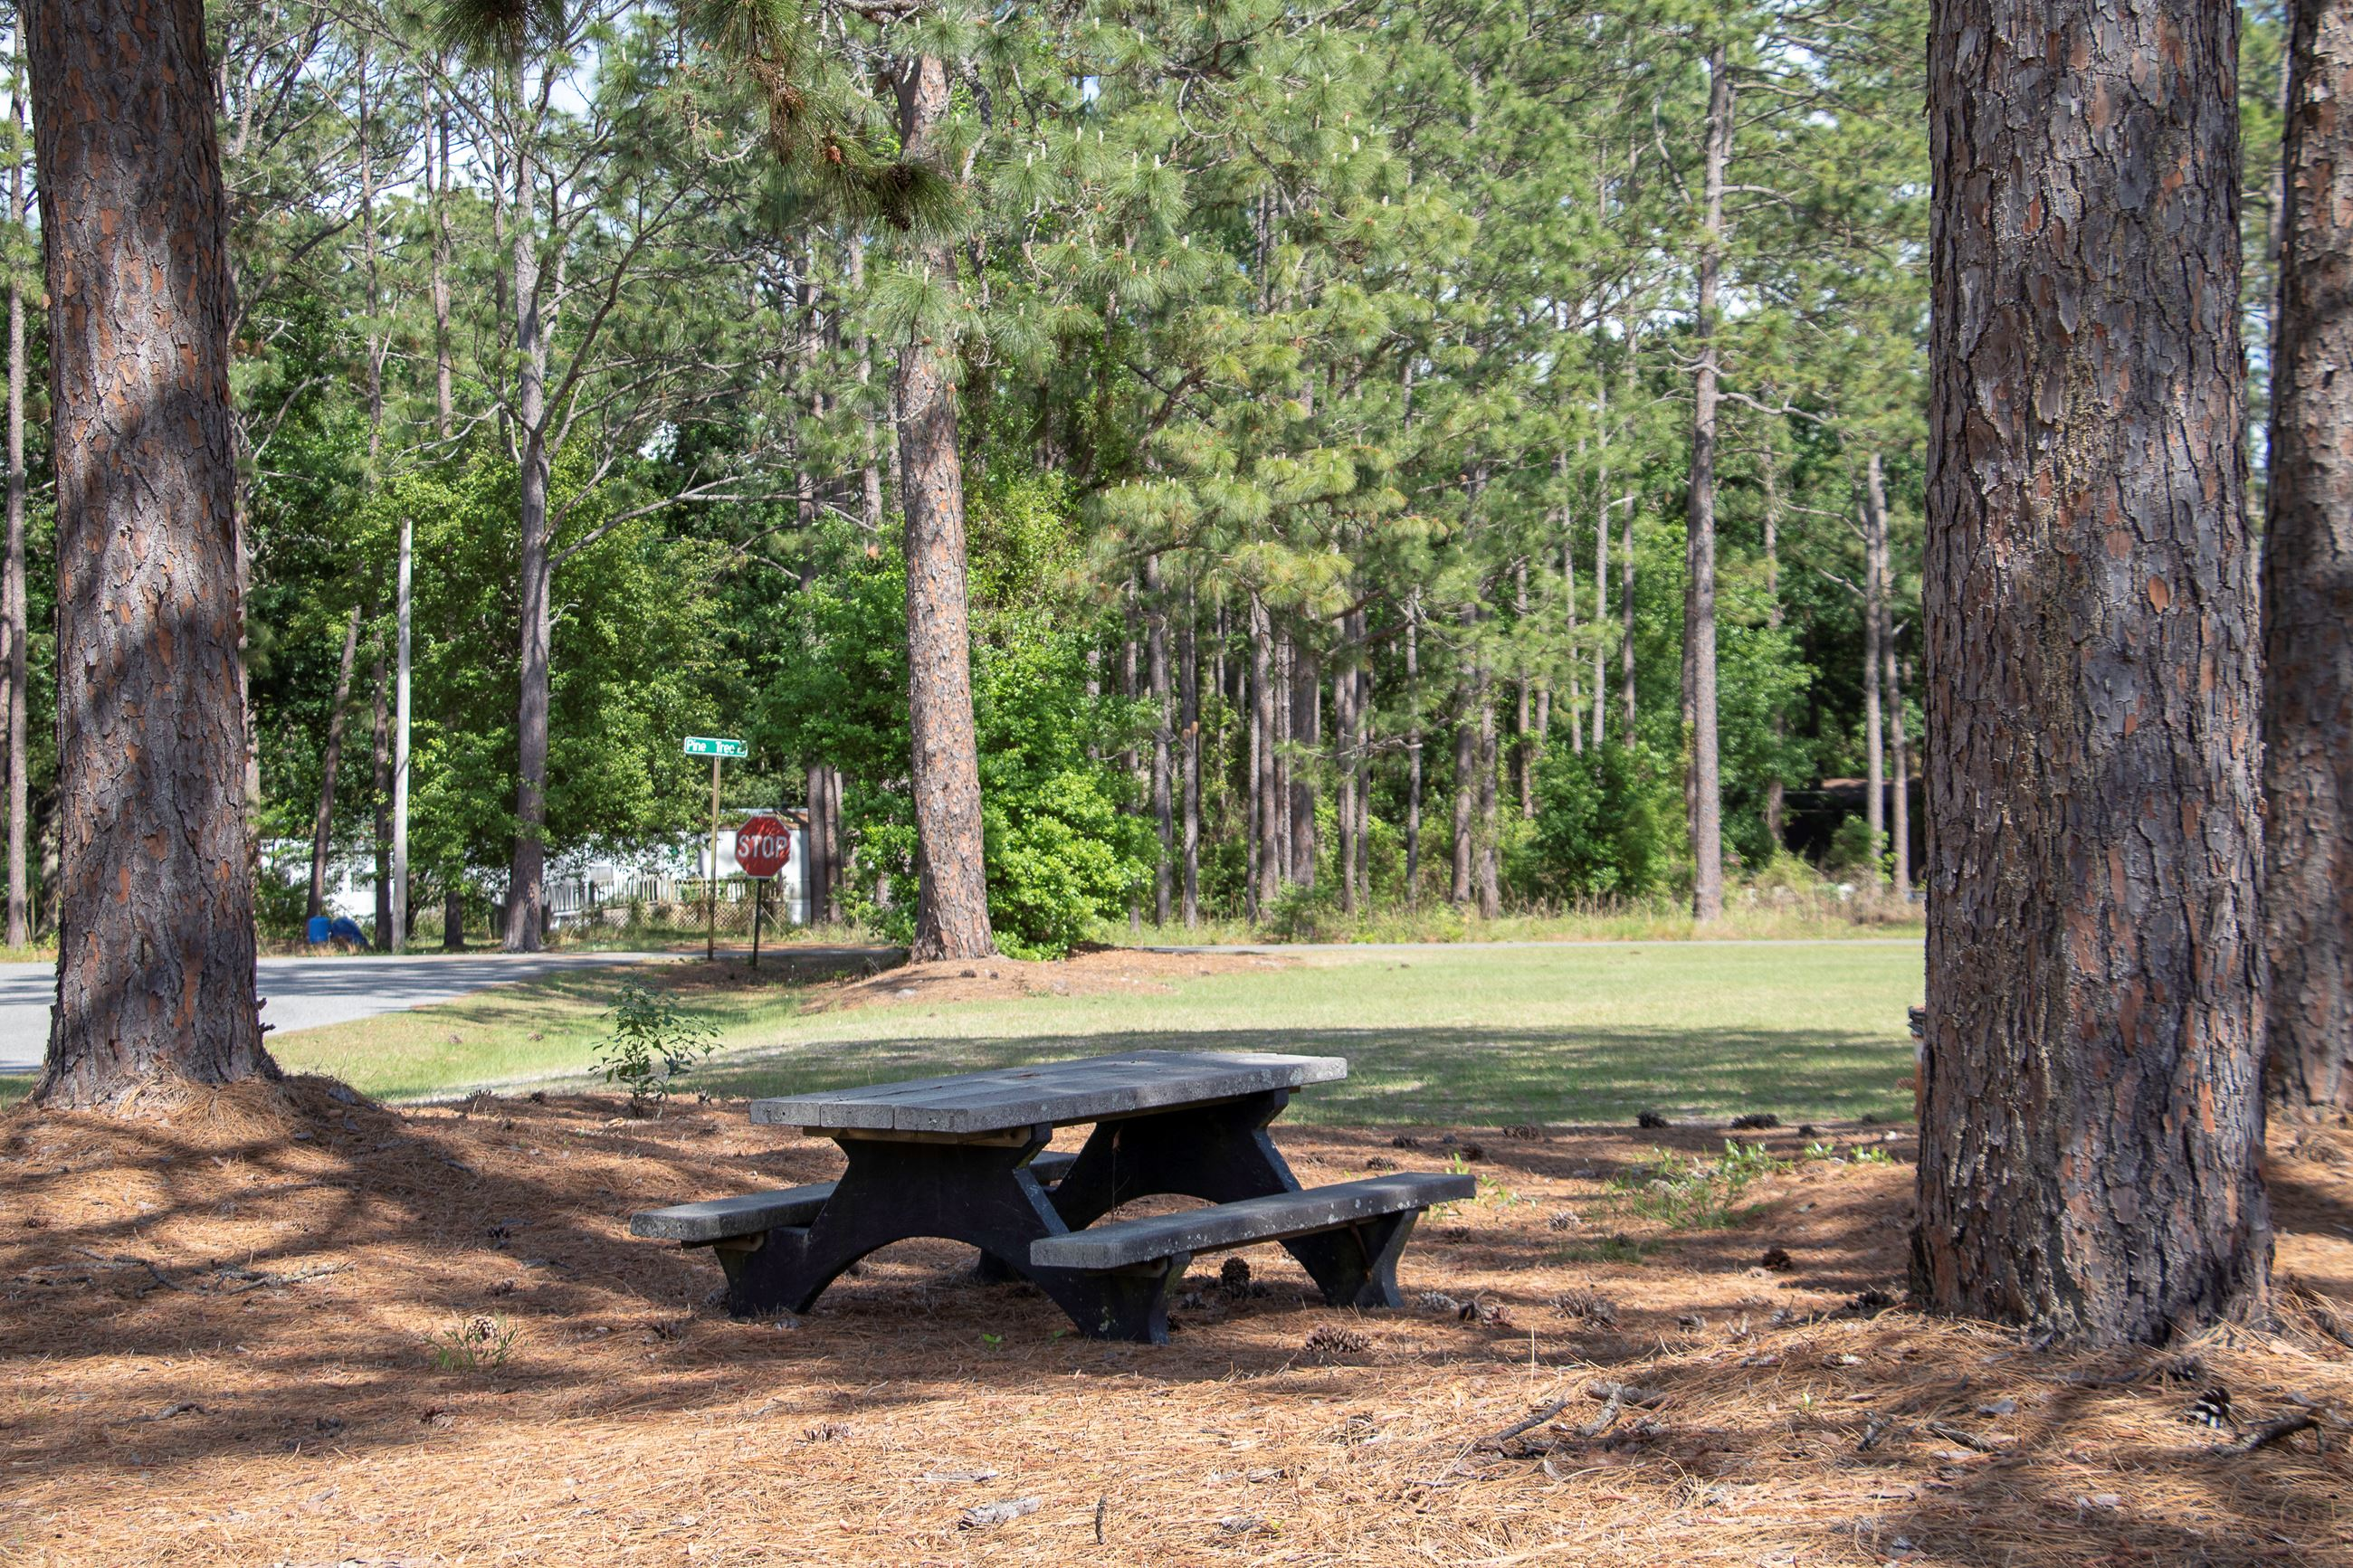 Image of a picnic bench at a park.